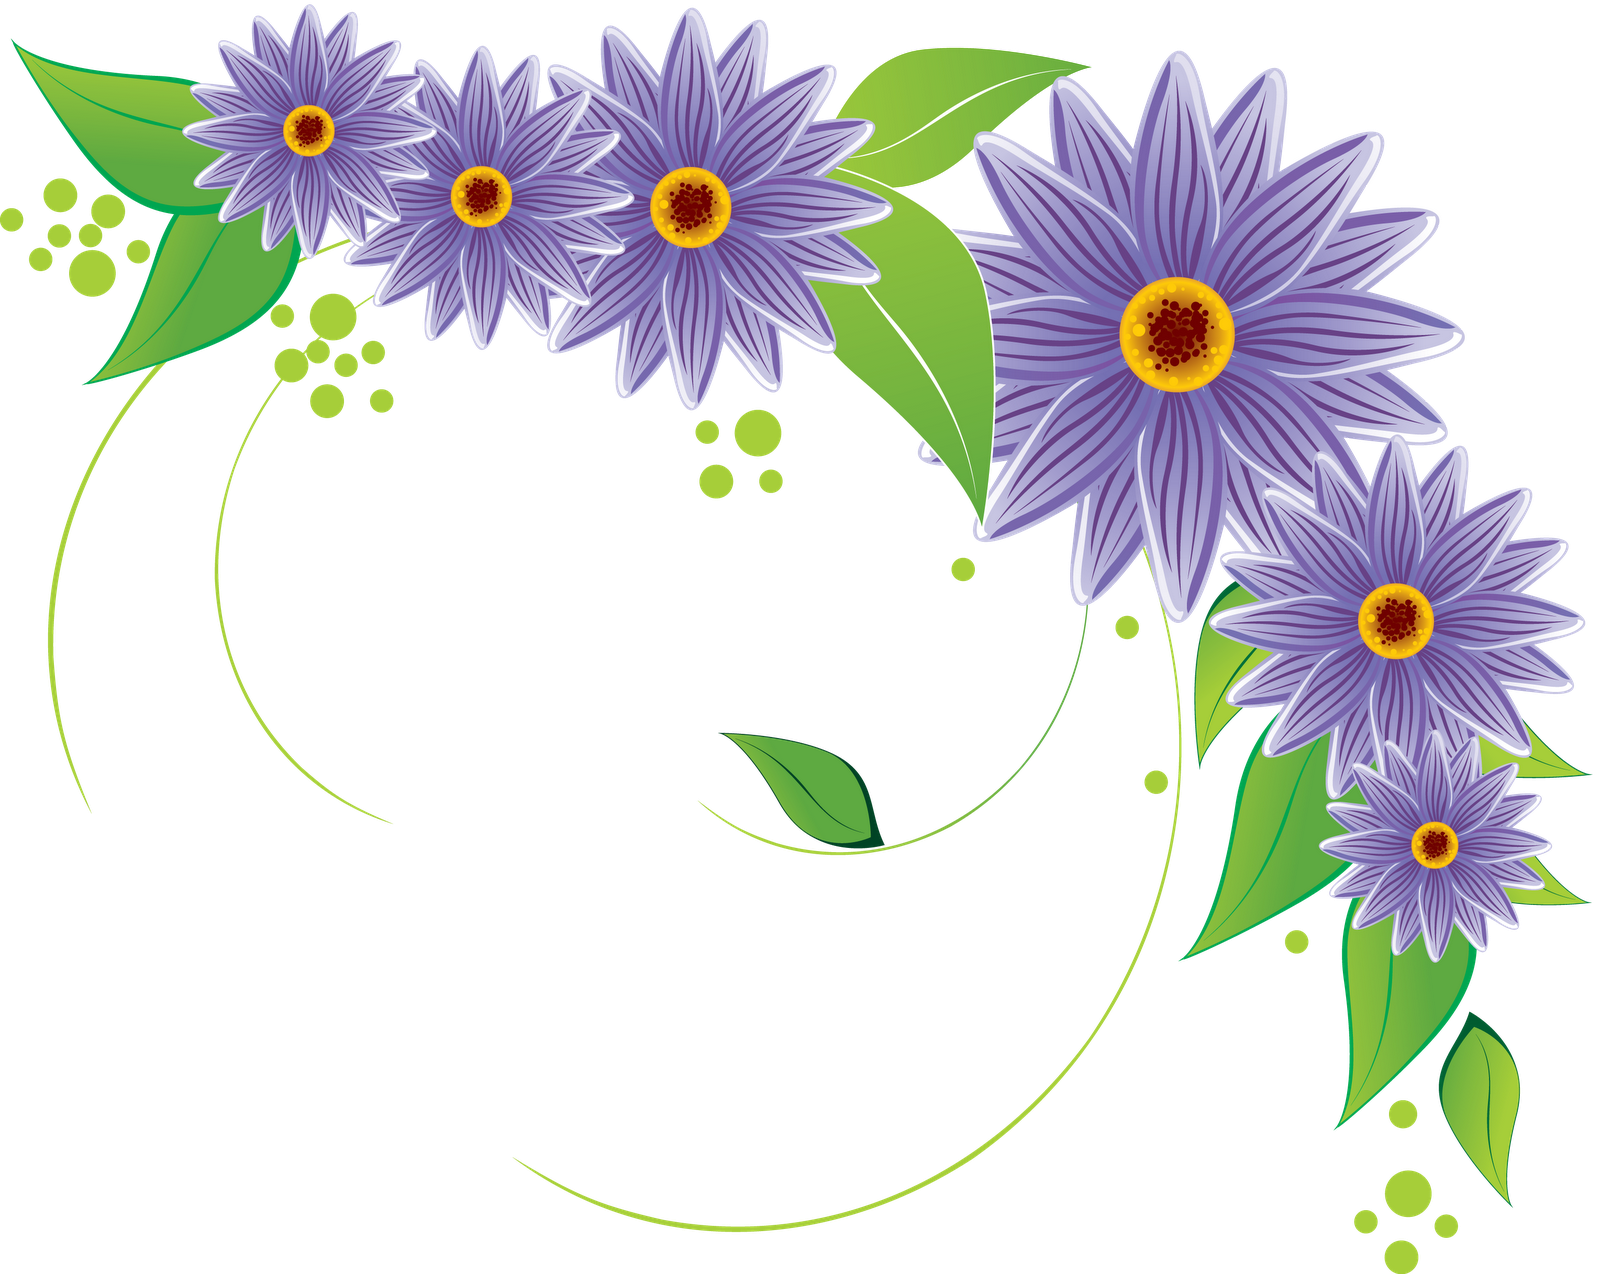 Flowers Vectors PNG Transparent Flowers Vectors.PNG Images.